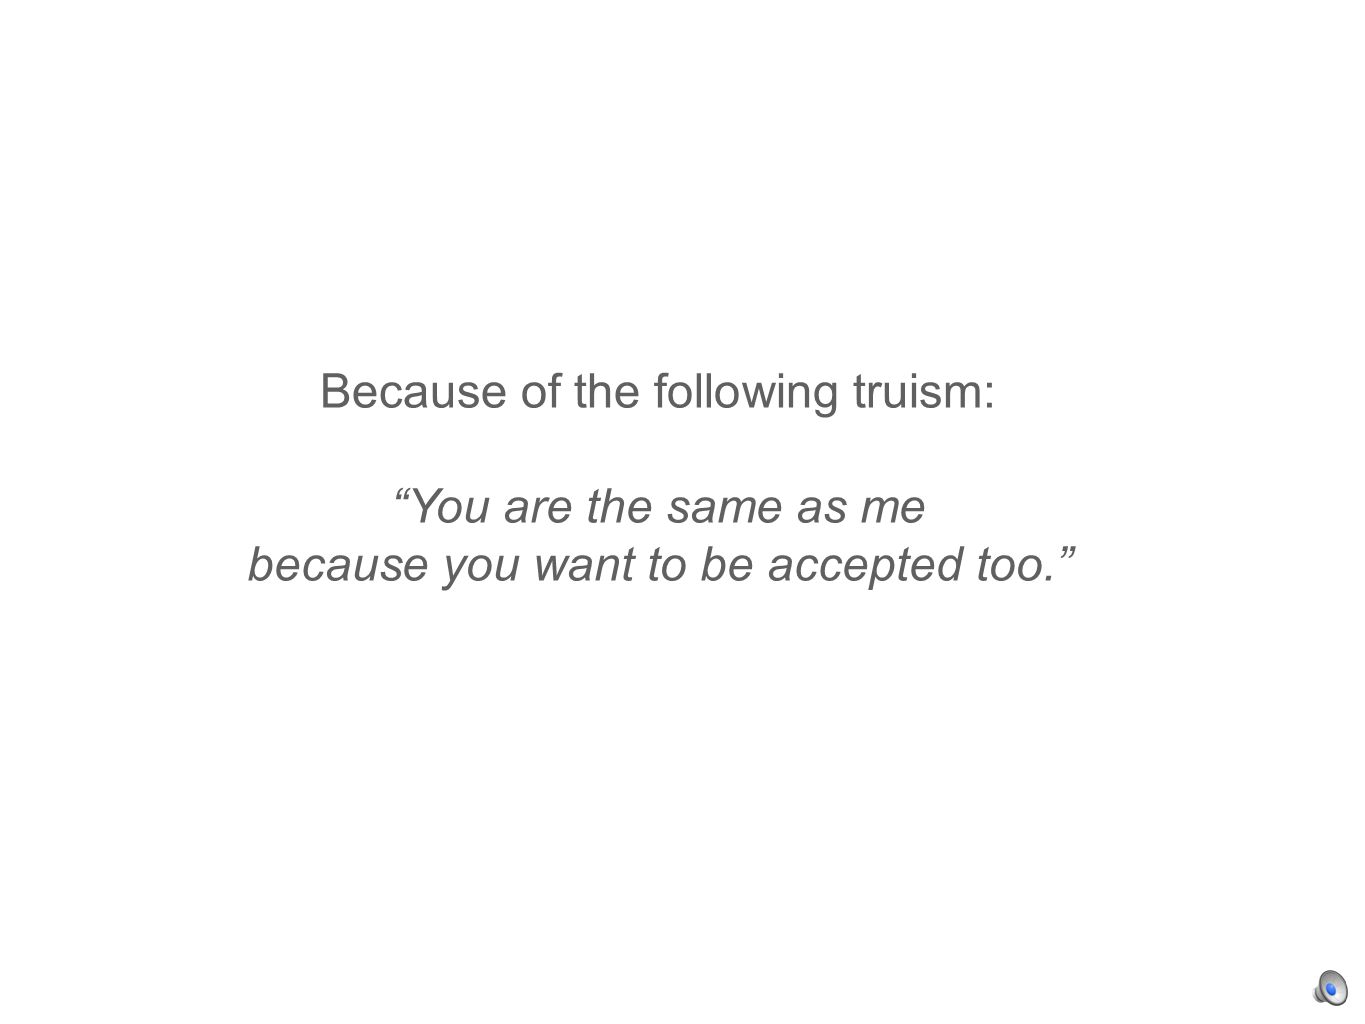 Because of the following truism: You are the same as me because you want to be accepted too.